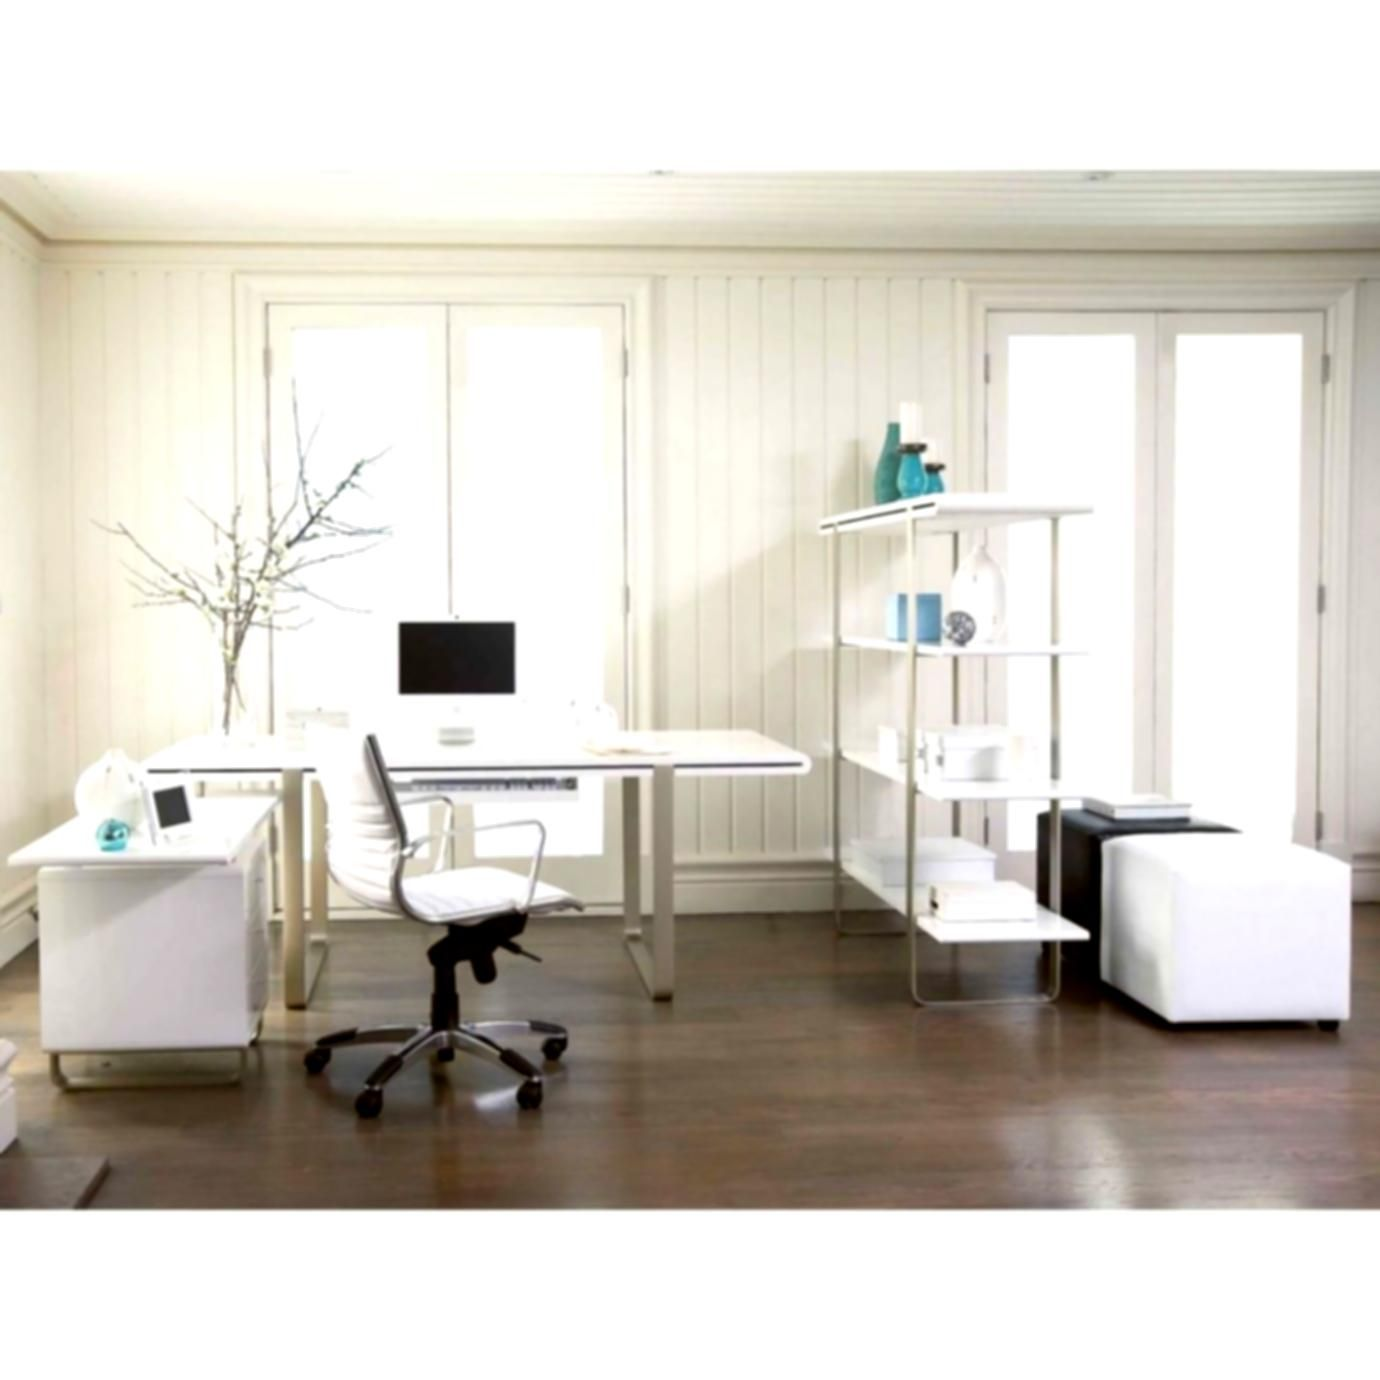 home office designers contemporary home offices. 1920x1440 Px Interior Photo Luxury White Home Office Design · Modern OfficesModern Designers Contemporary Offices